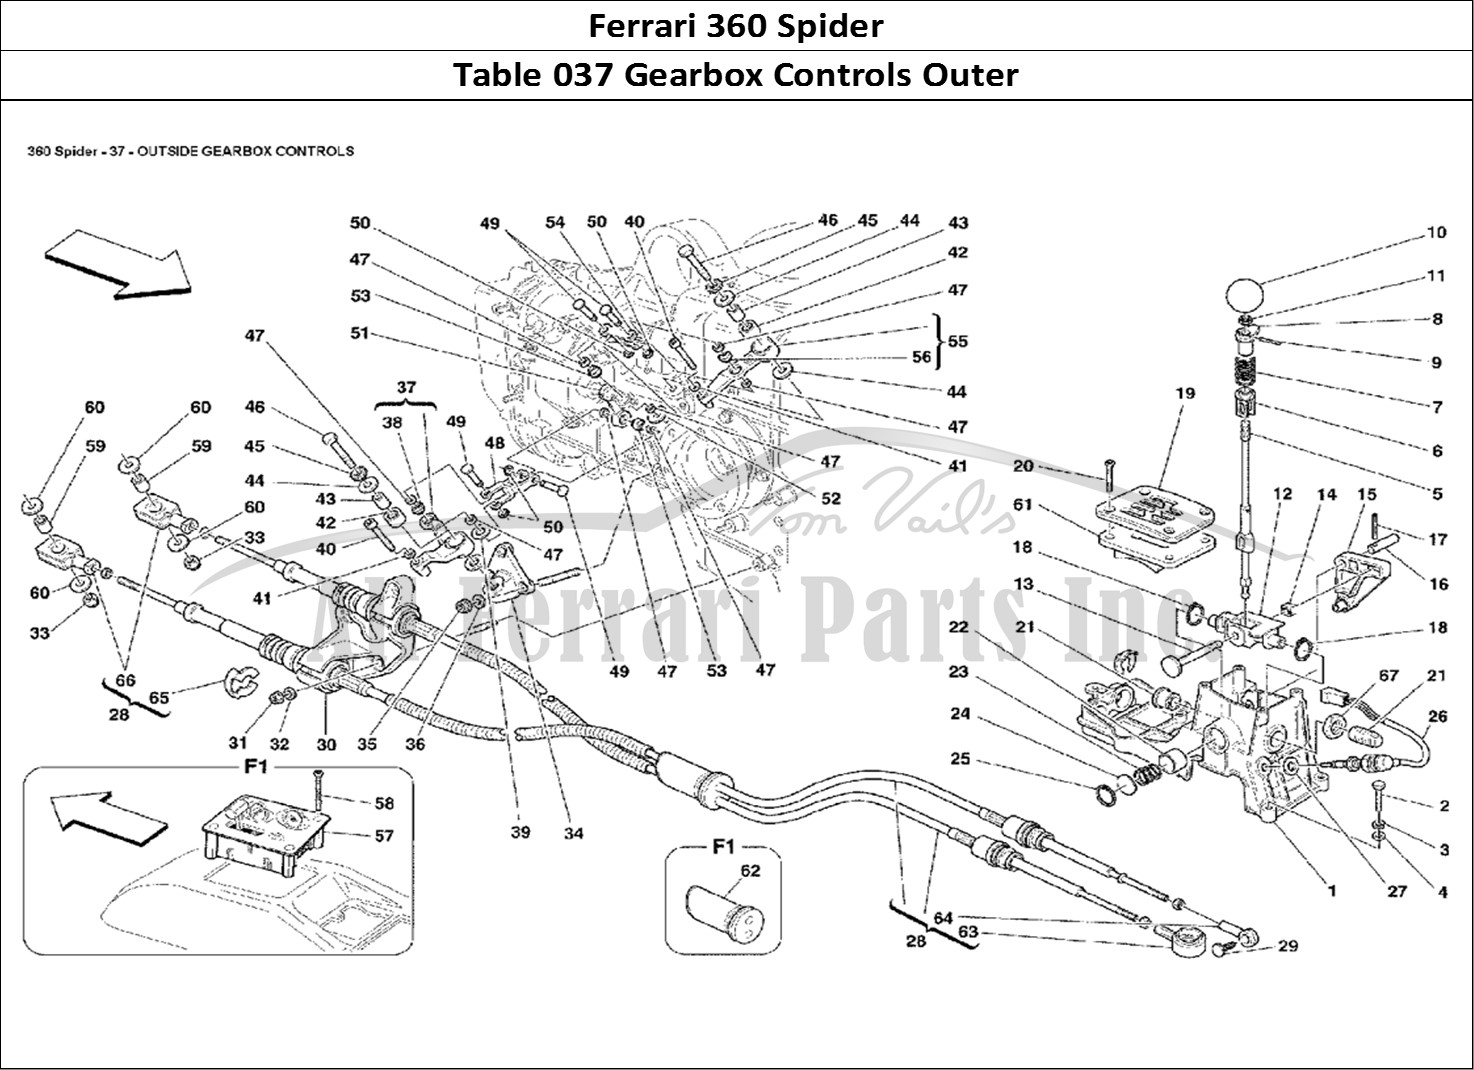 Buy original Ferrari 360 Spider 037 Gearbox Controls Outer